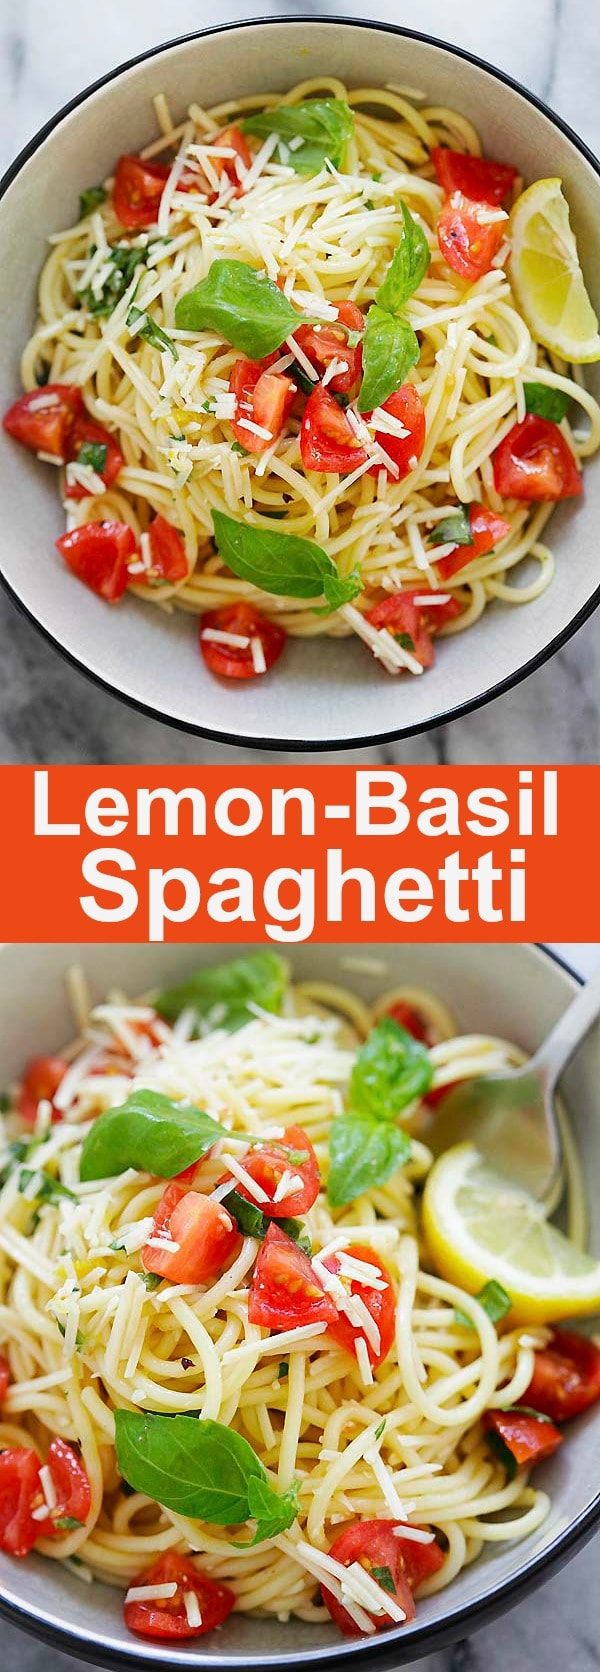 Lemon-Basil Spaghetti - refreshing, healthy and utterly delicious pasta dish made with lemon sauce, fresh basil and Parmesan cheese. This is perfect as lunch or a quick dinner | rasamalaysia.com